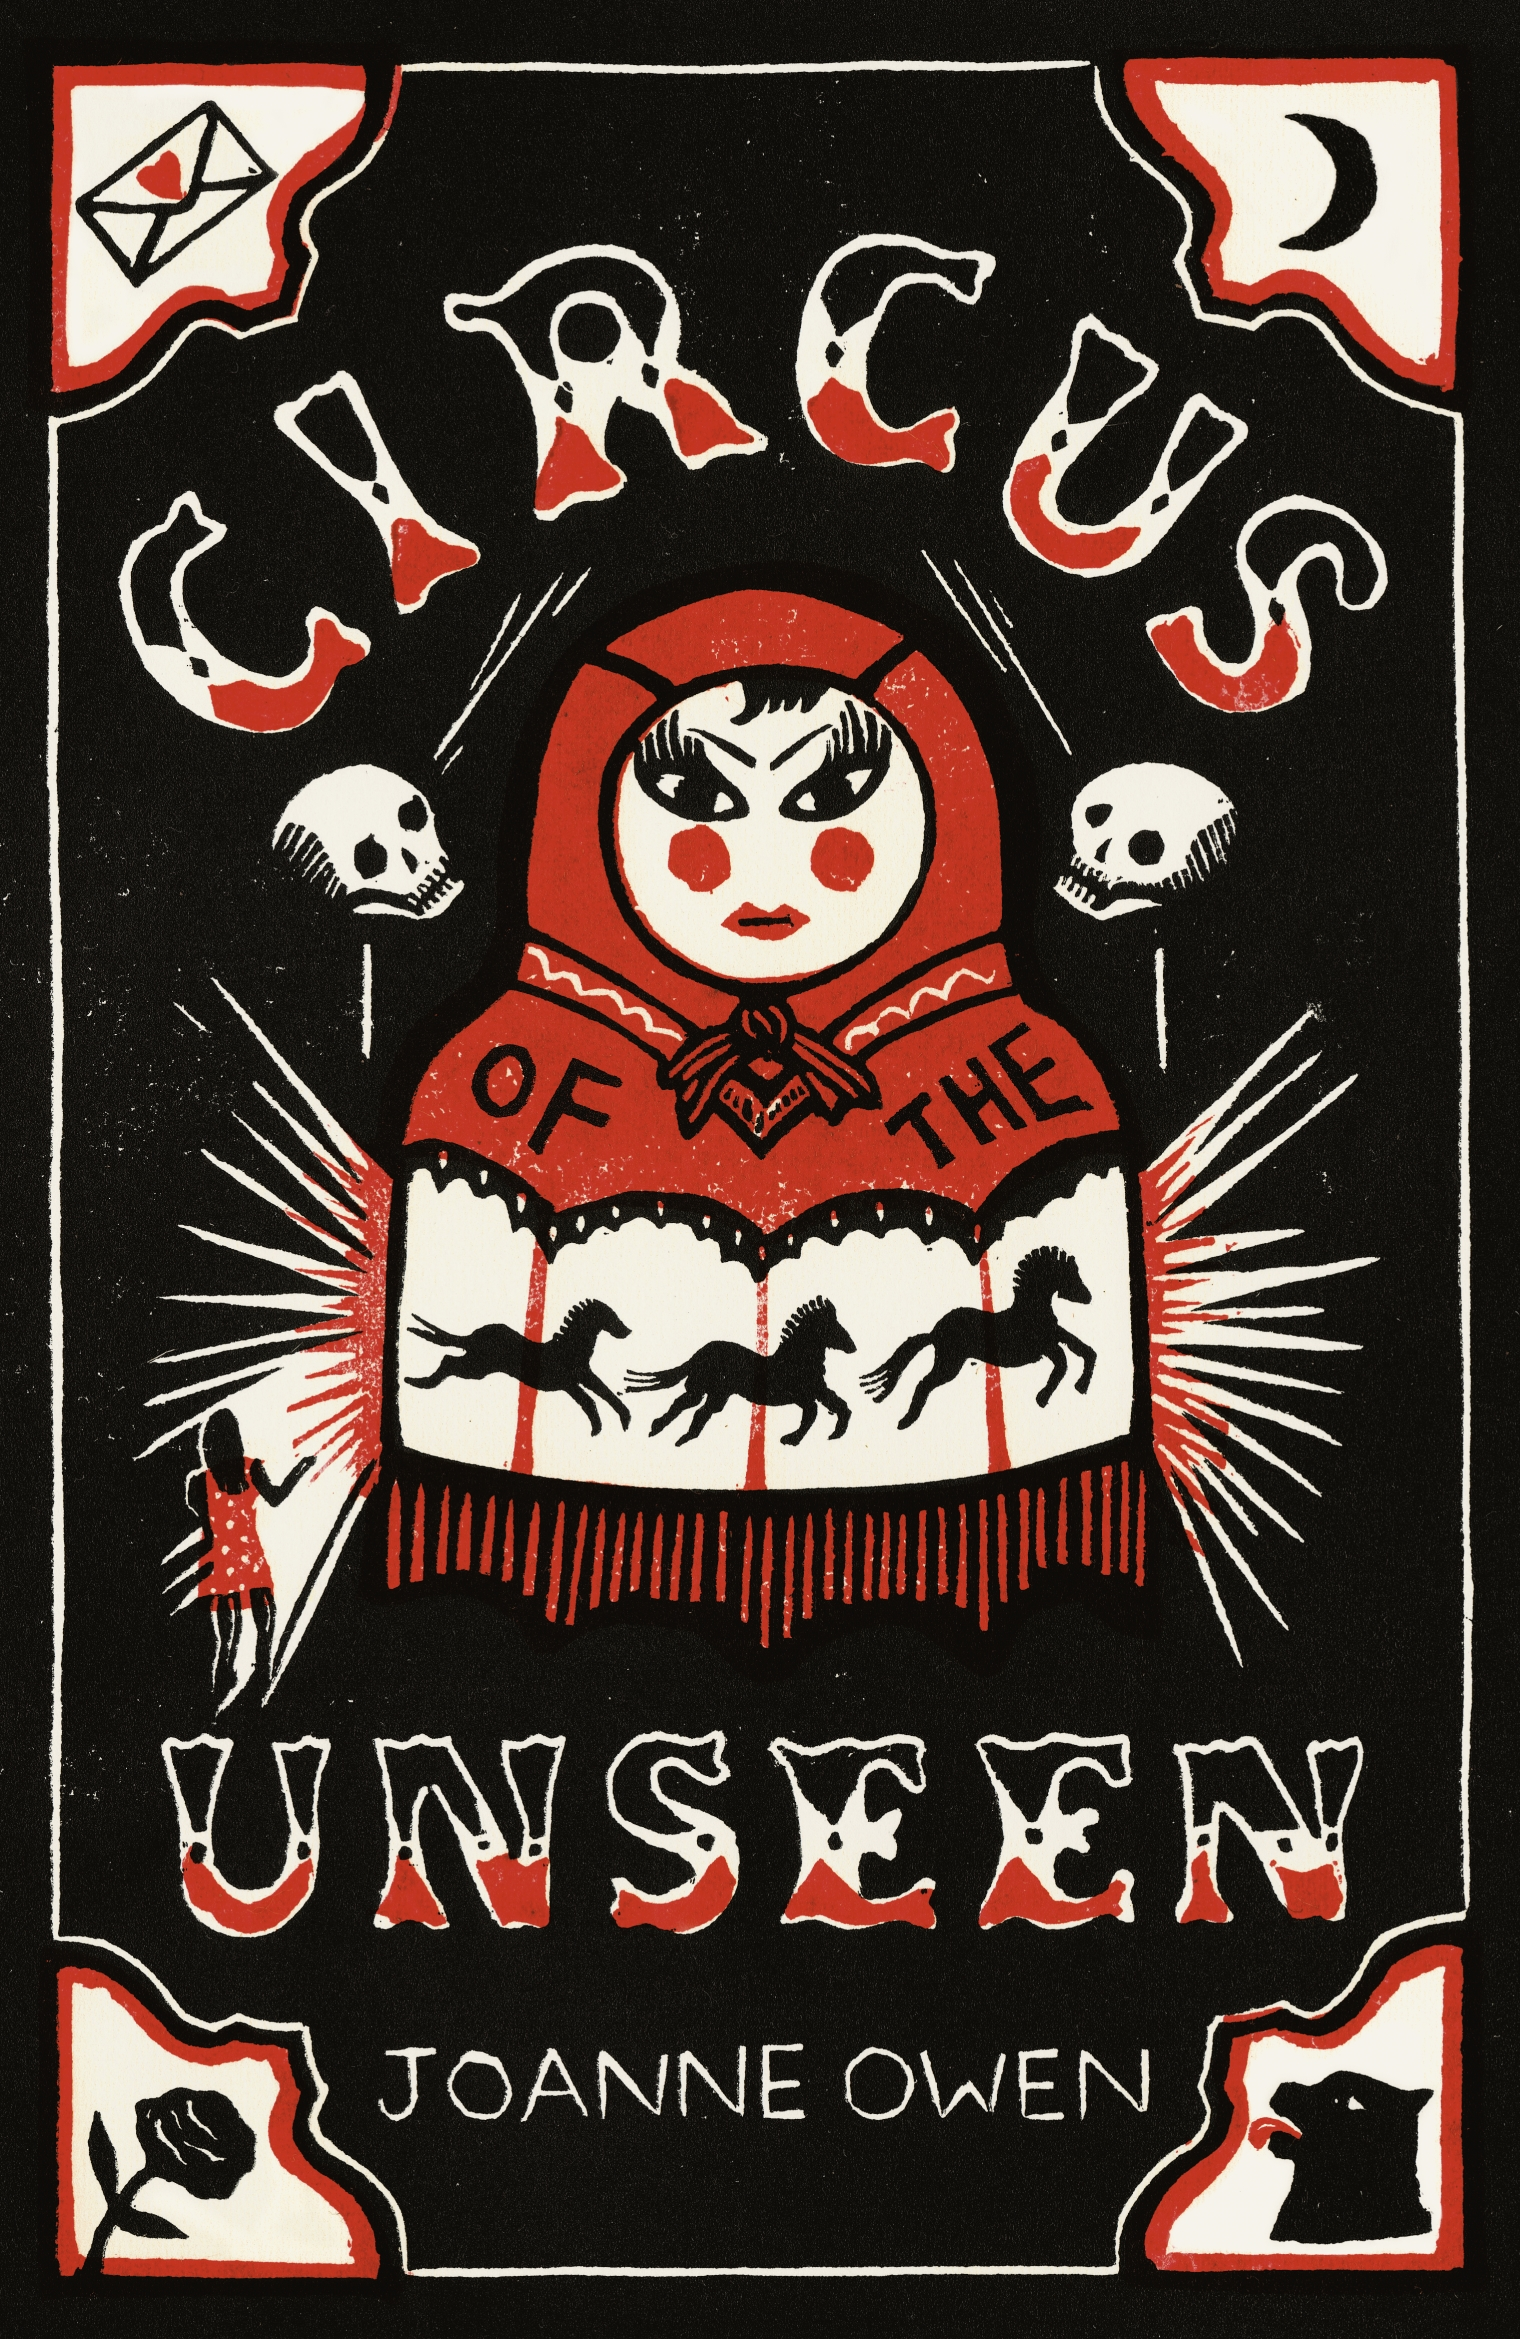 Circus of the Unseen by Joanne Owen